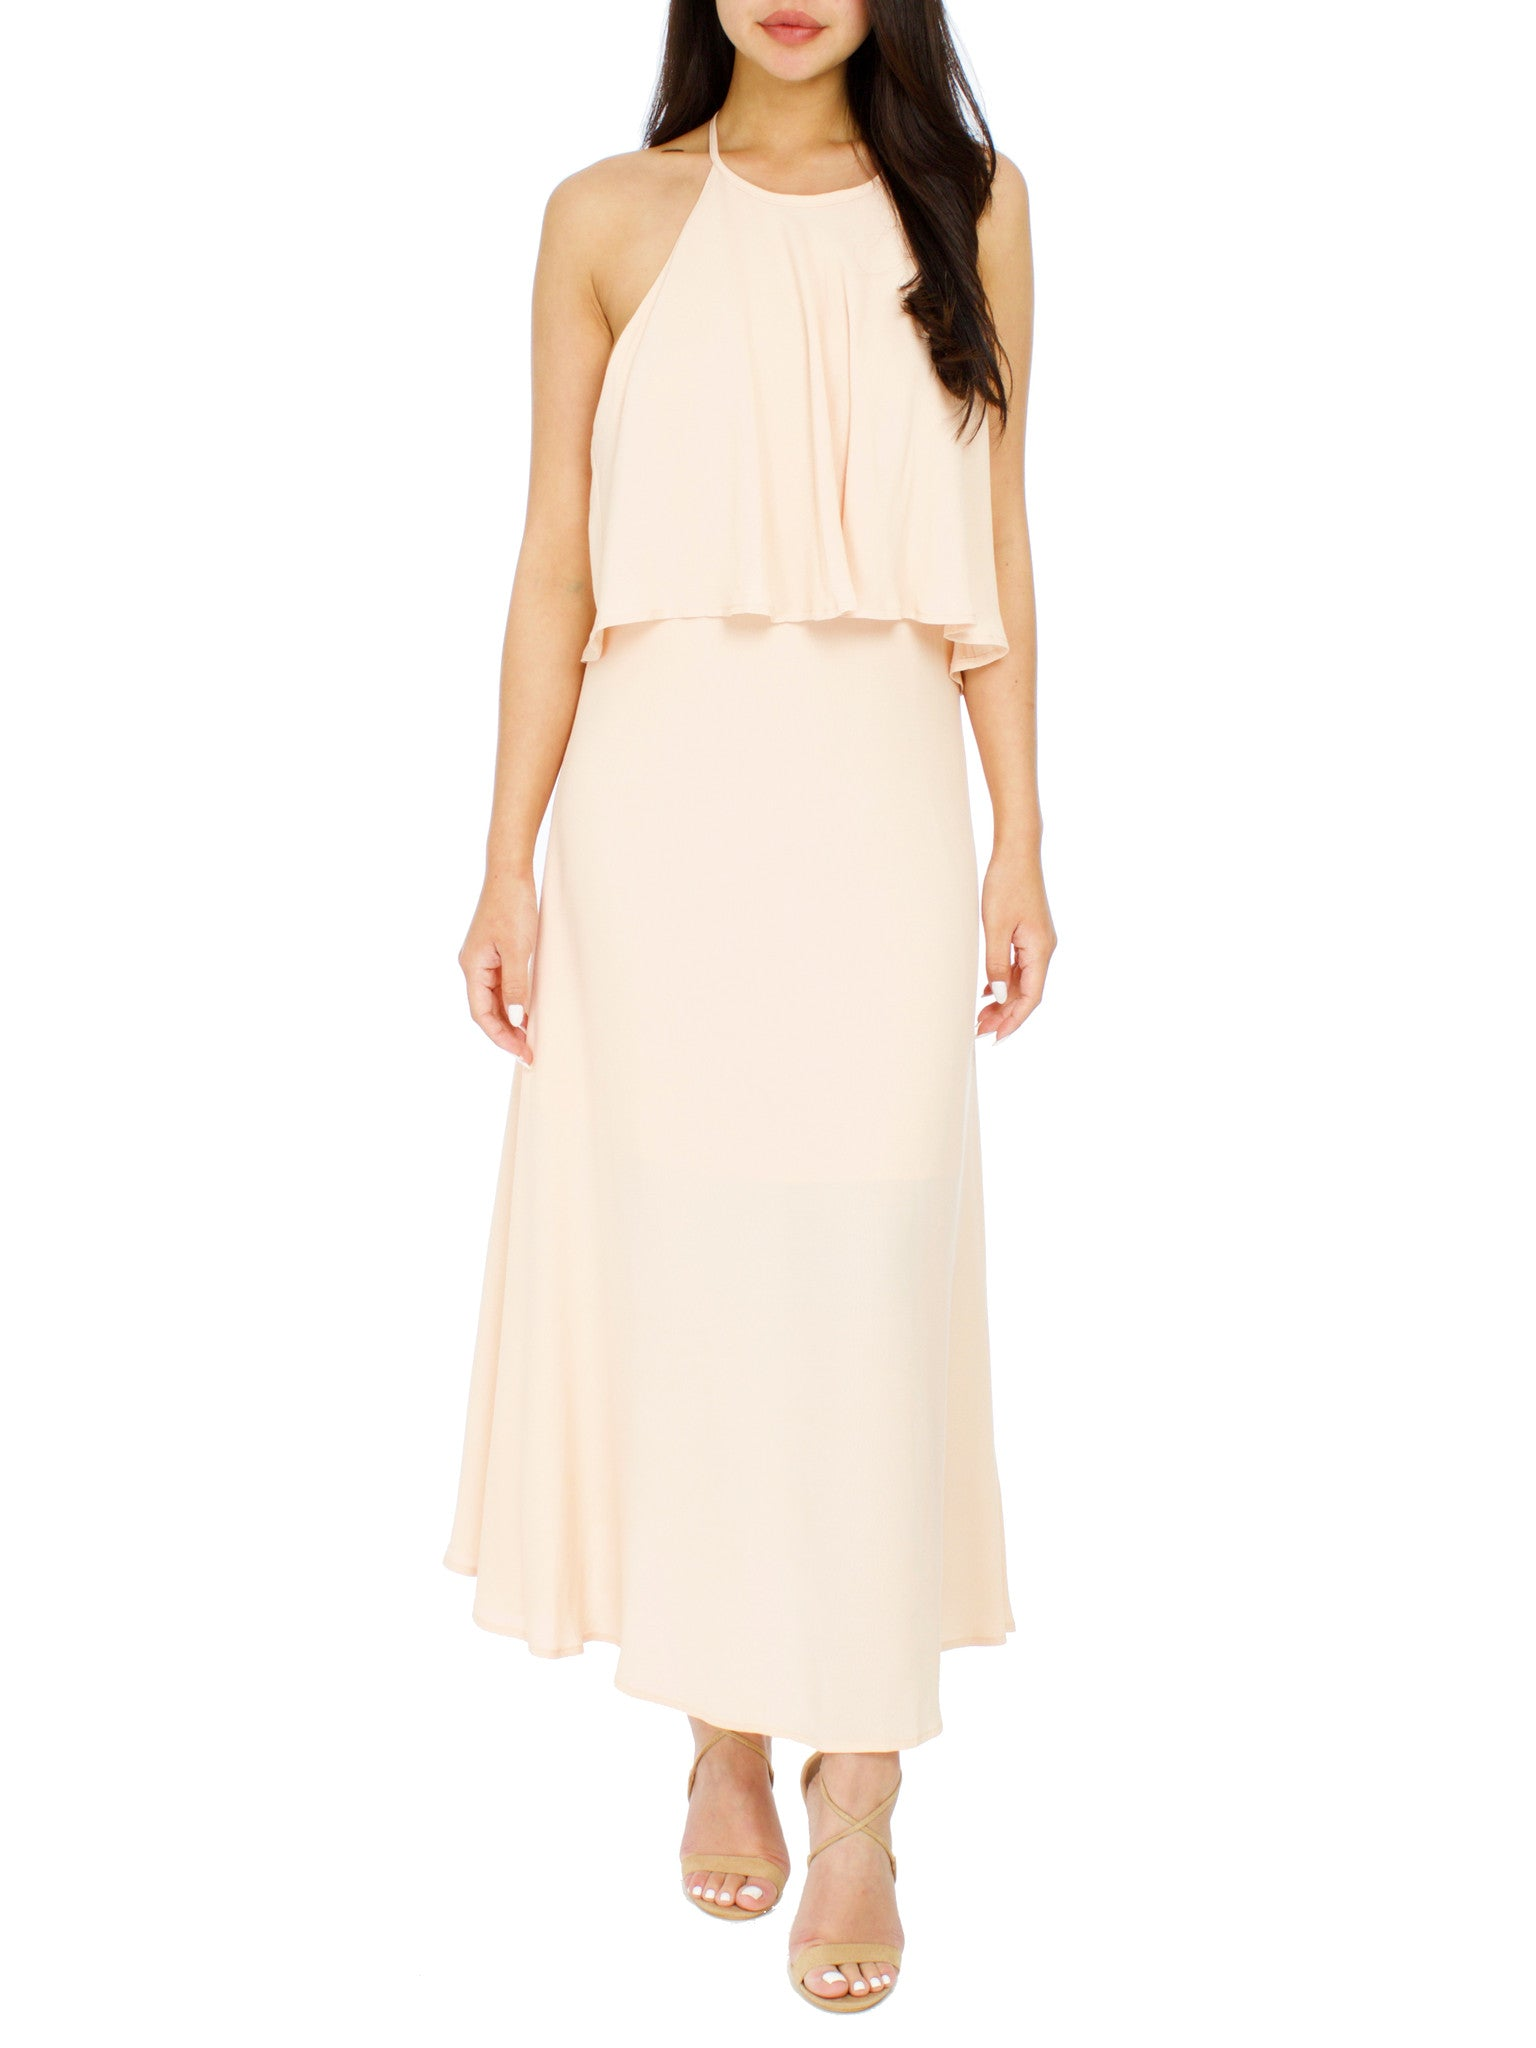 Daisy Blush Dress - PRADEGAL